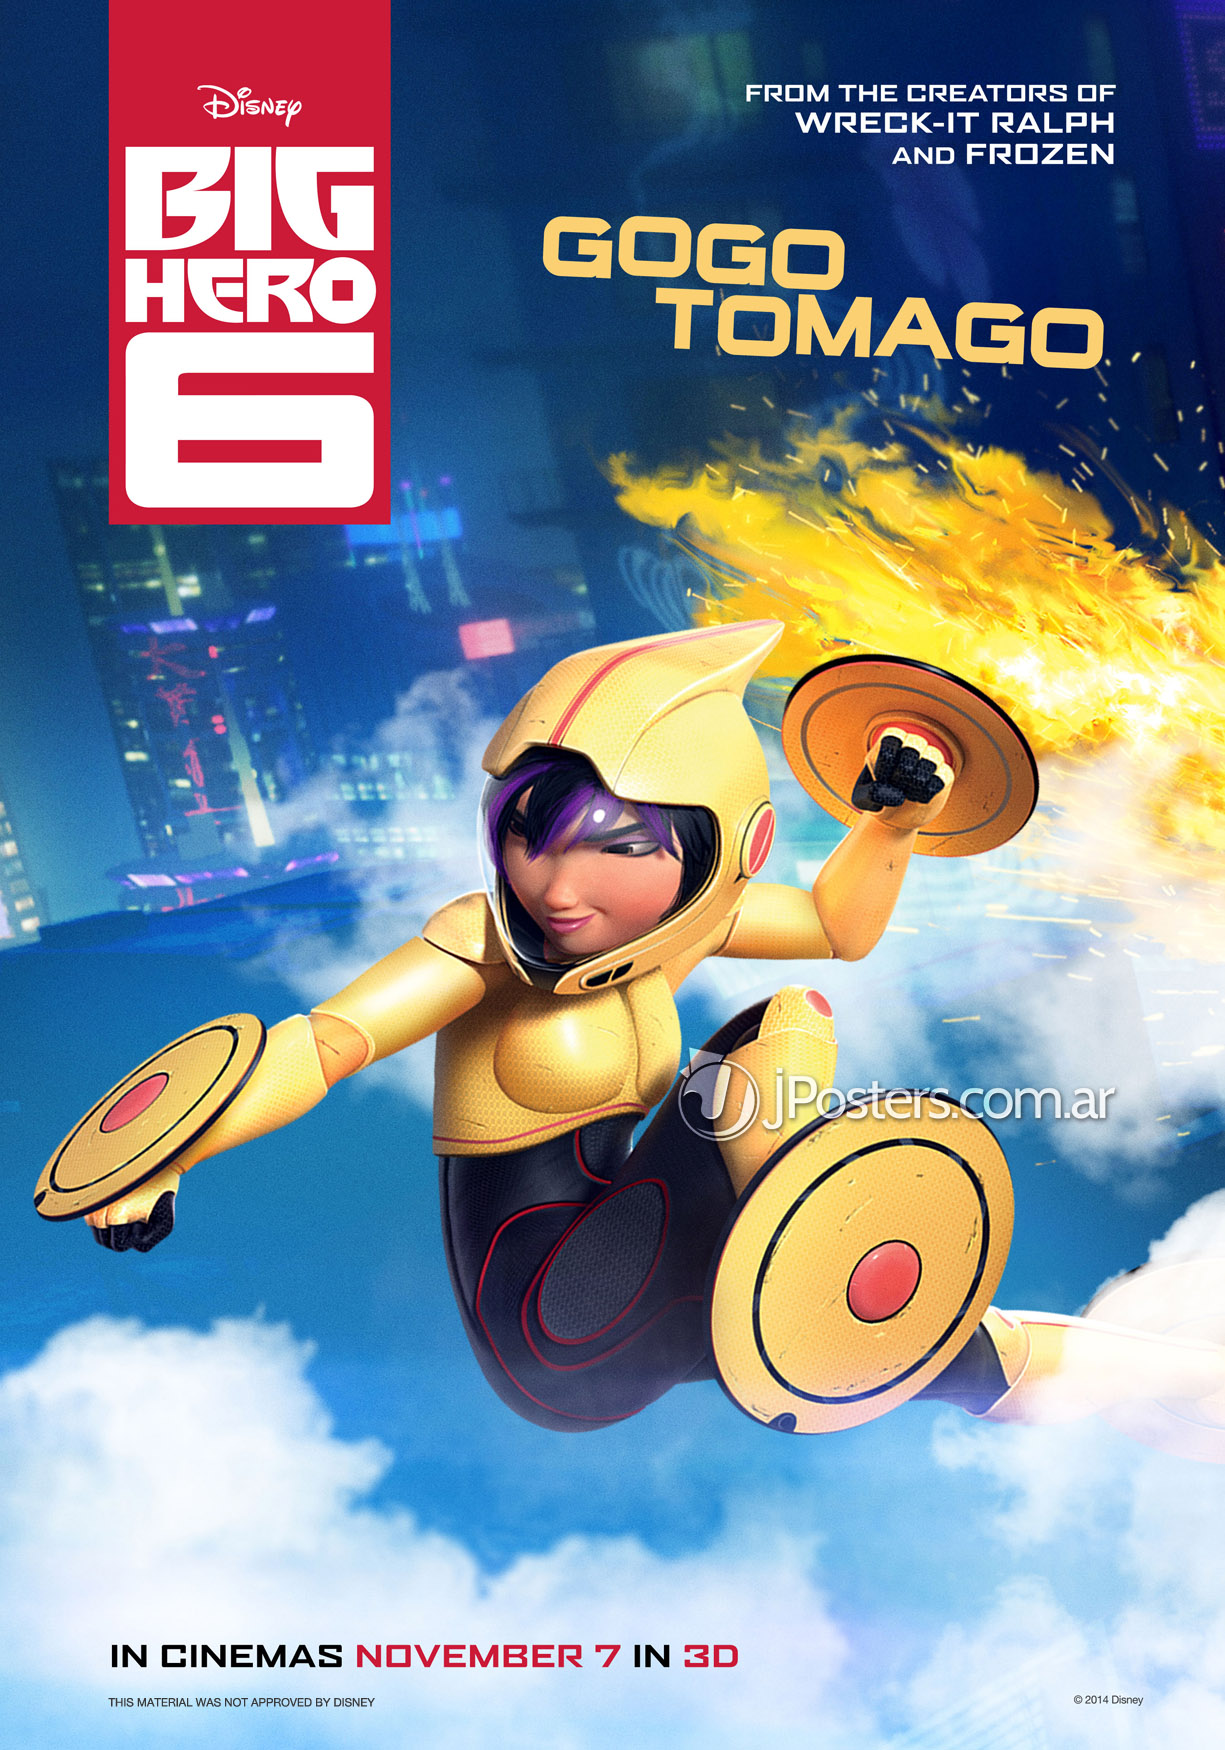 6 New Character Posters For Marvel And Disneys Big Hero 6 We